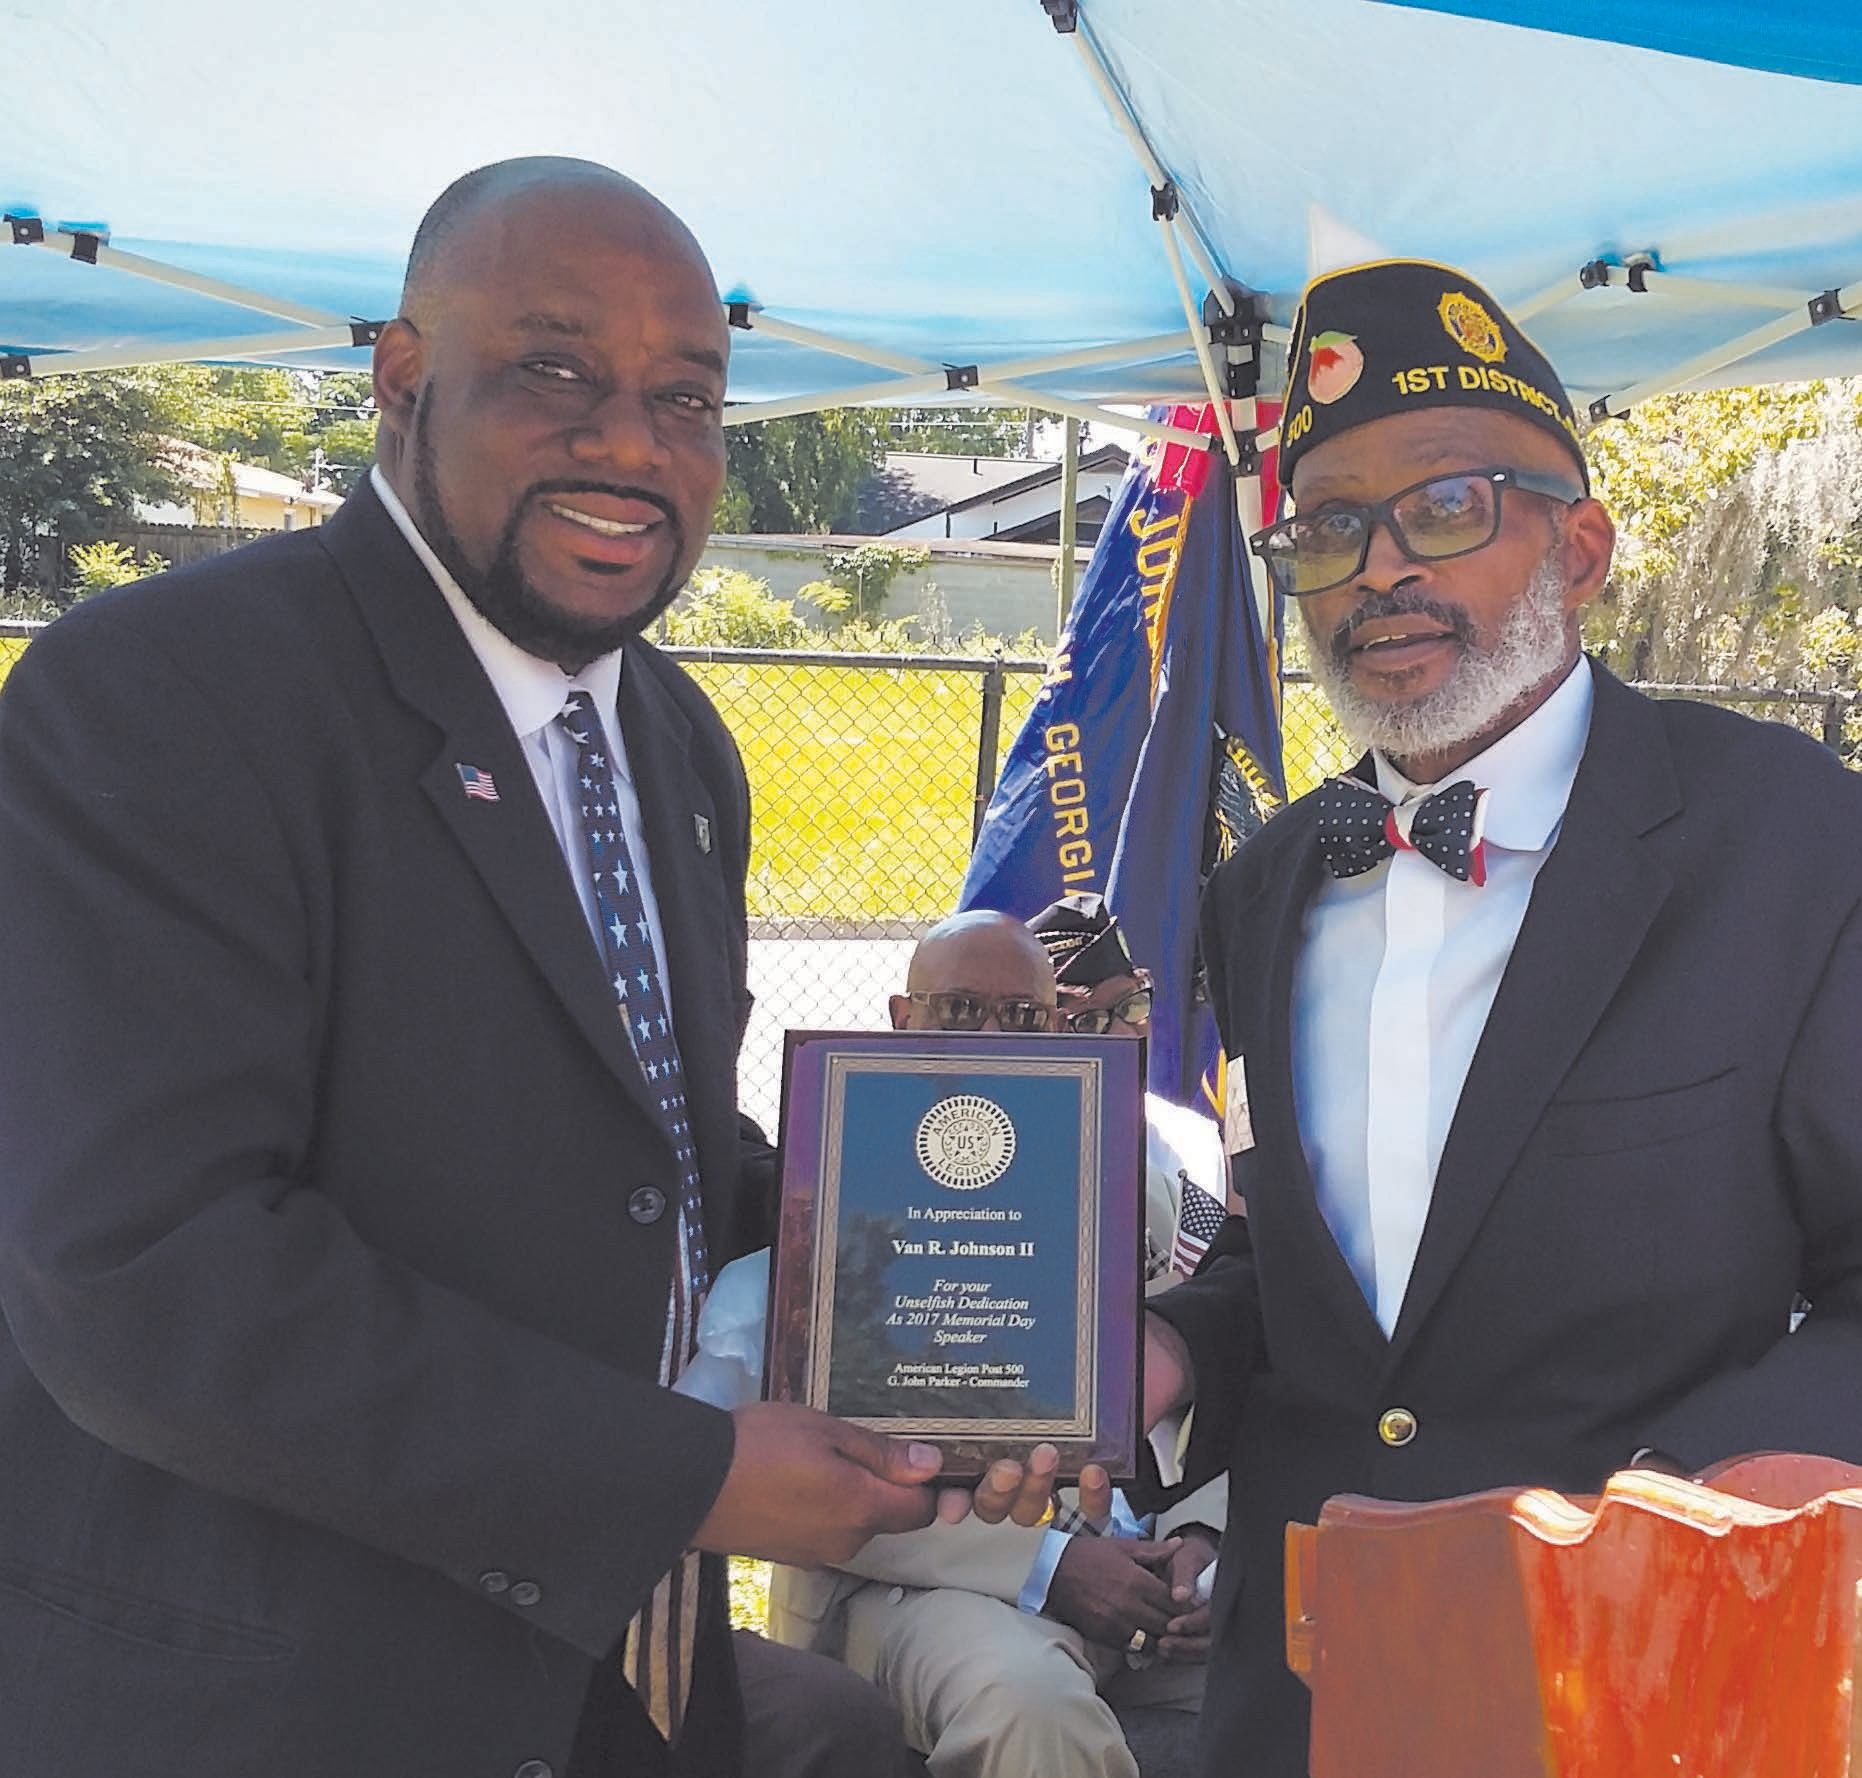 Post 500 Chaplain James Putney presented Alderman Johnson with a plaque recognizing him for his community service.